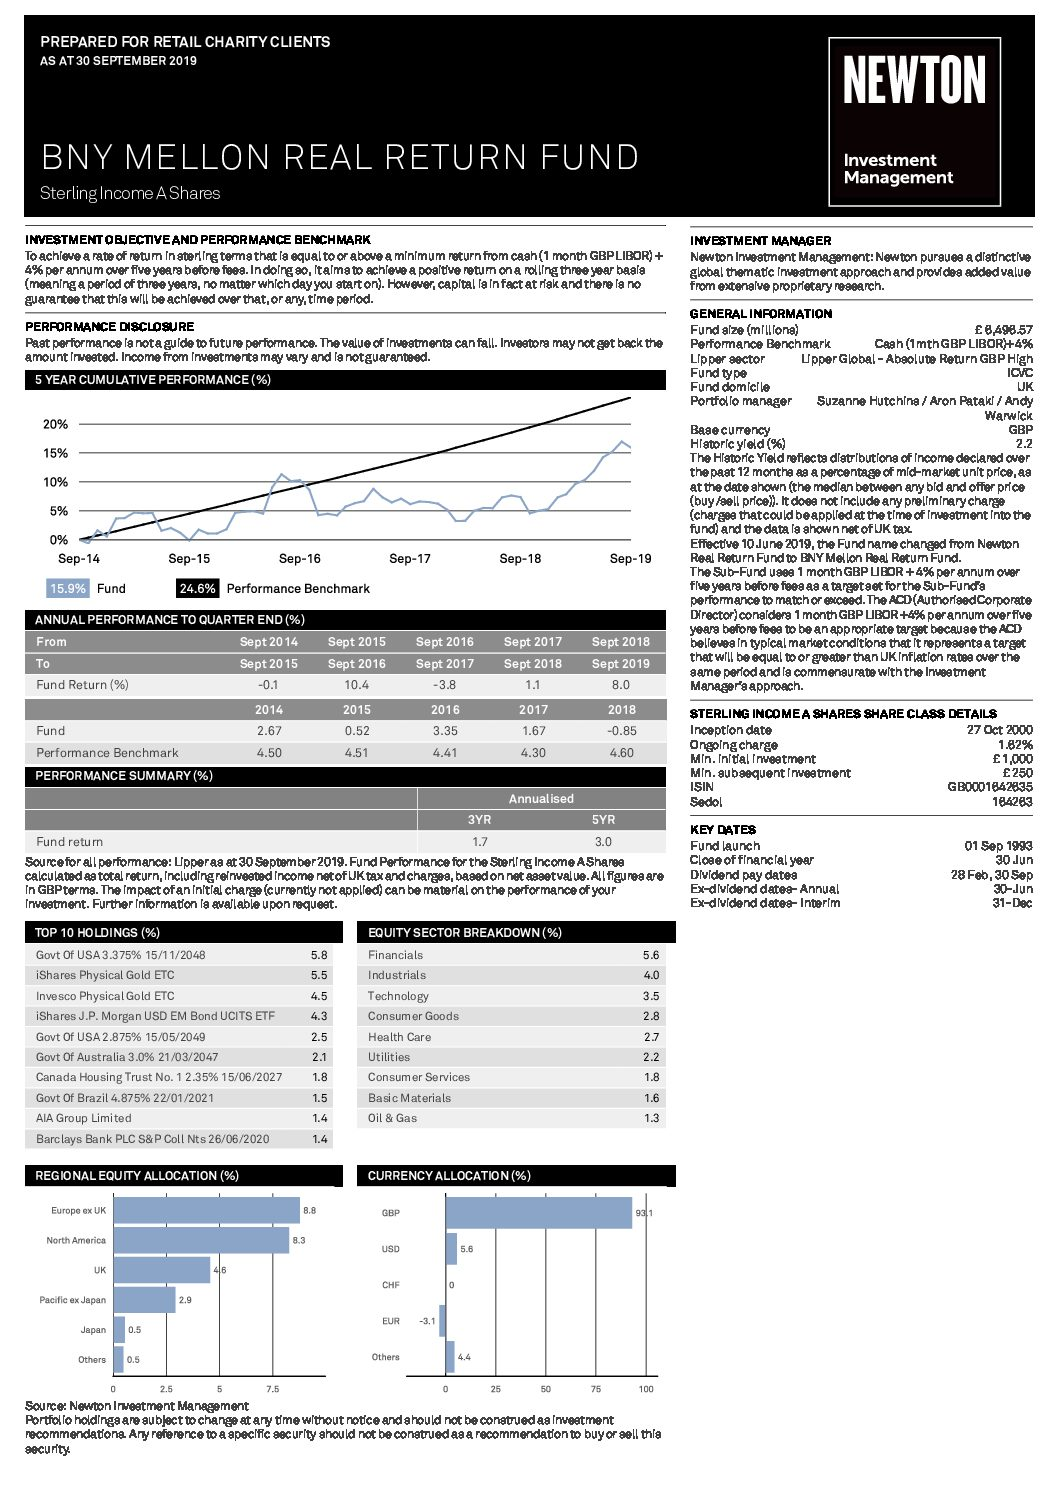 BNY Mellon Real Return Fund factsheet